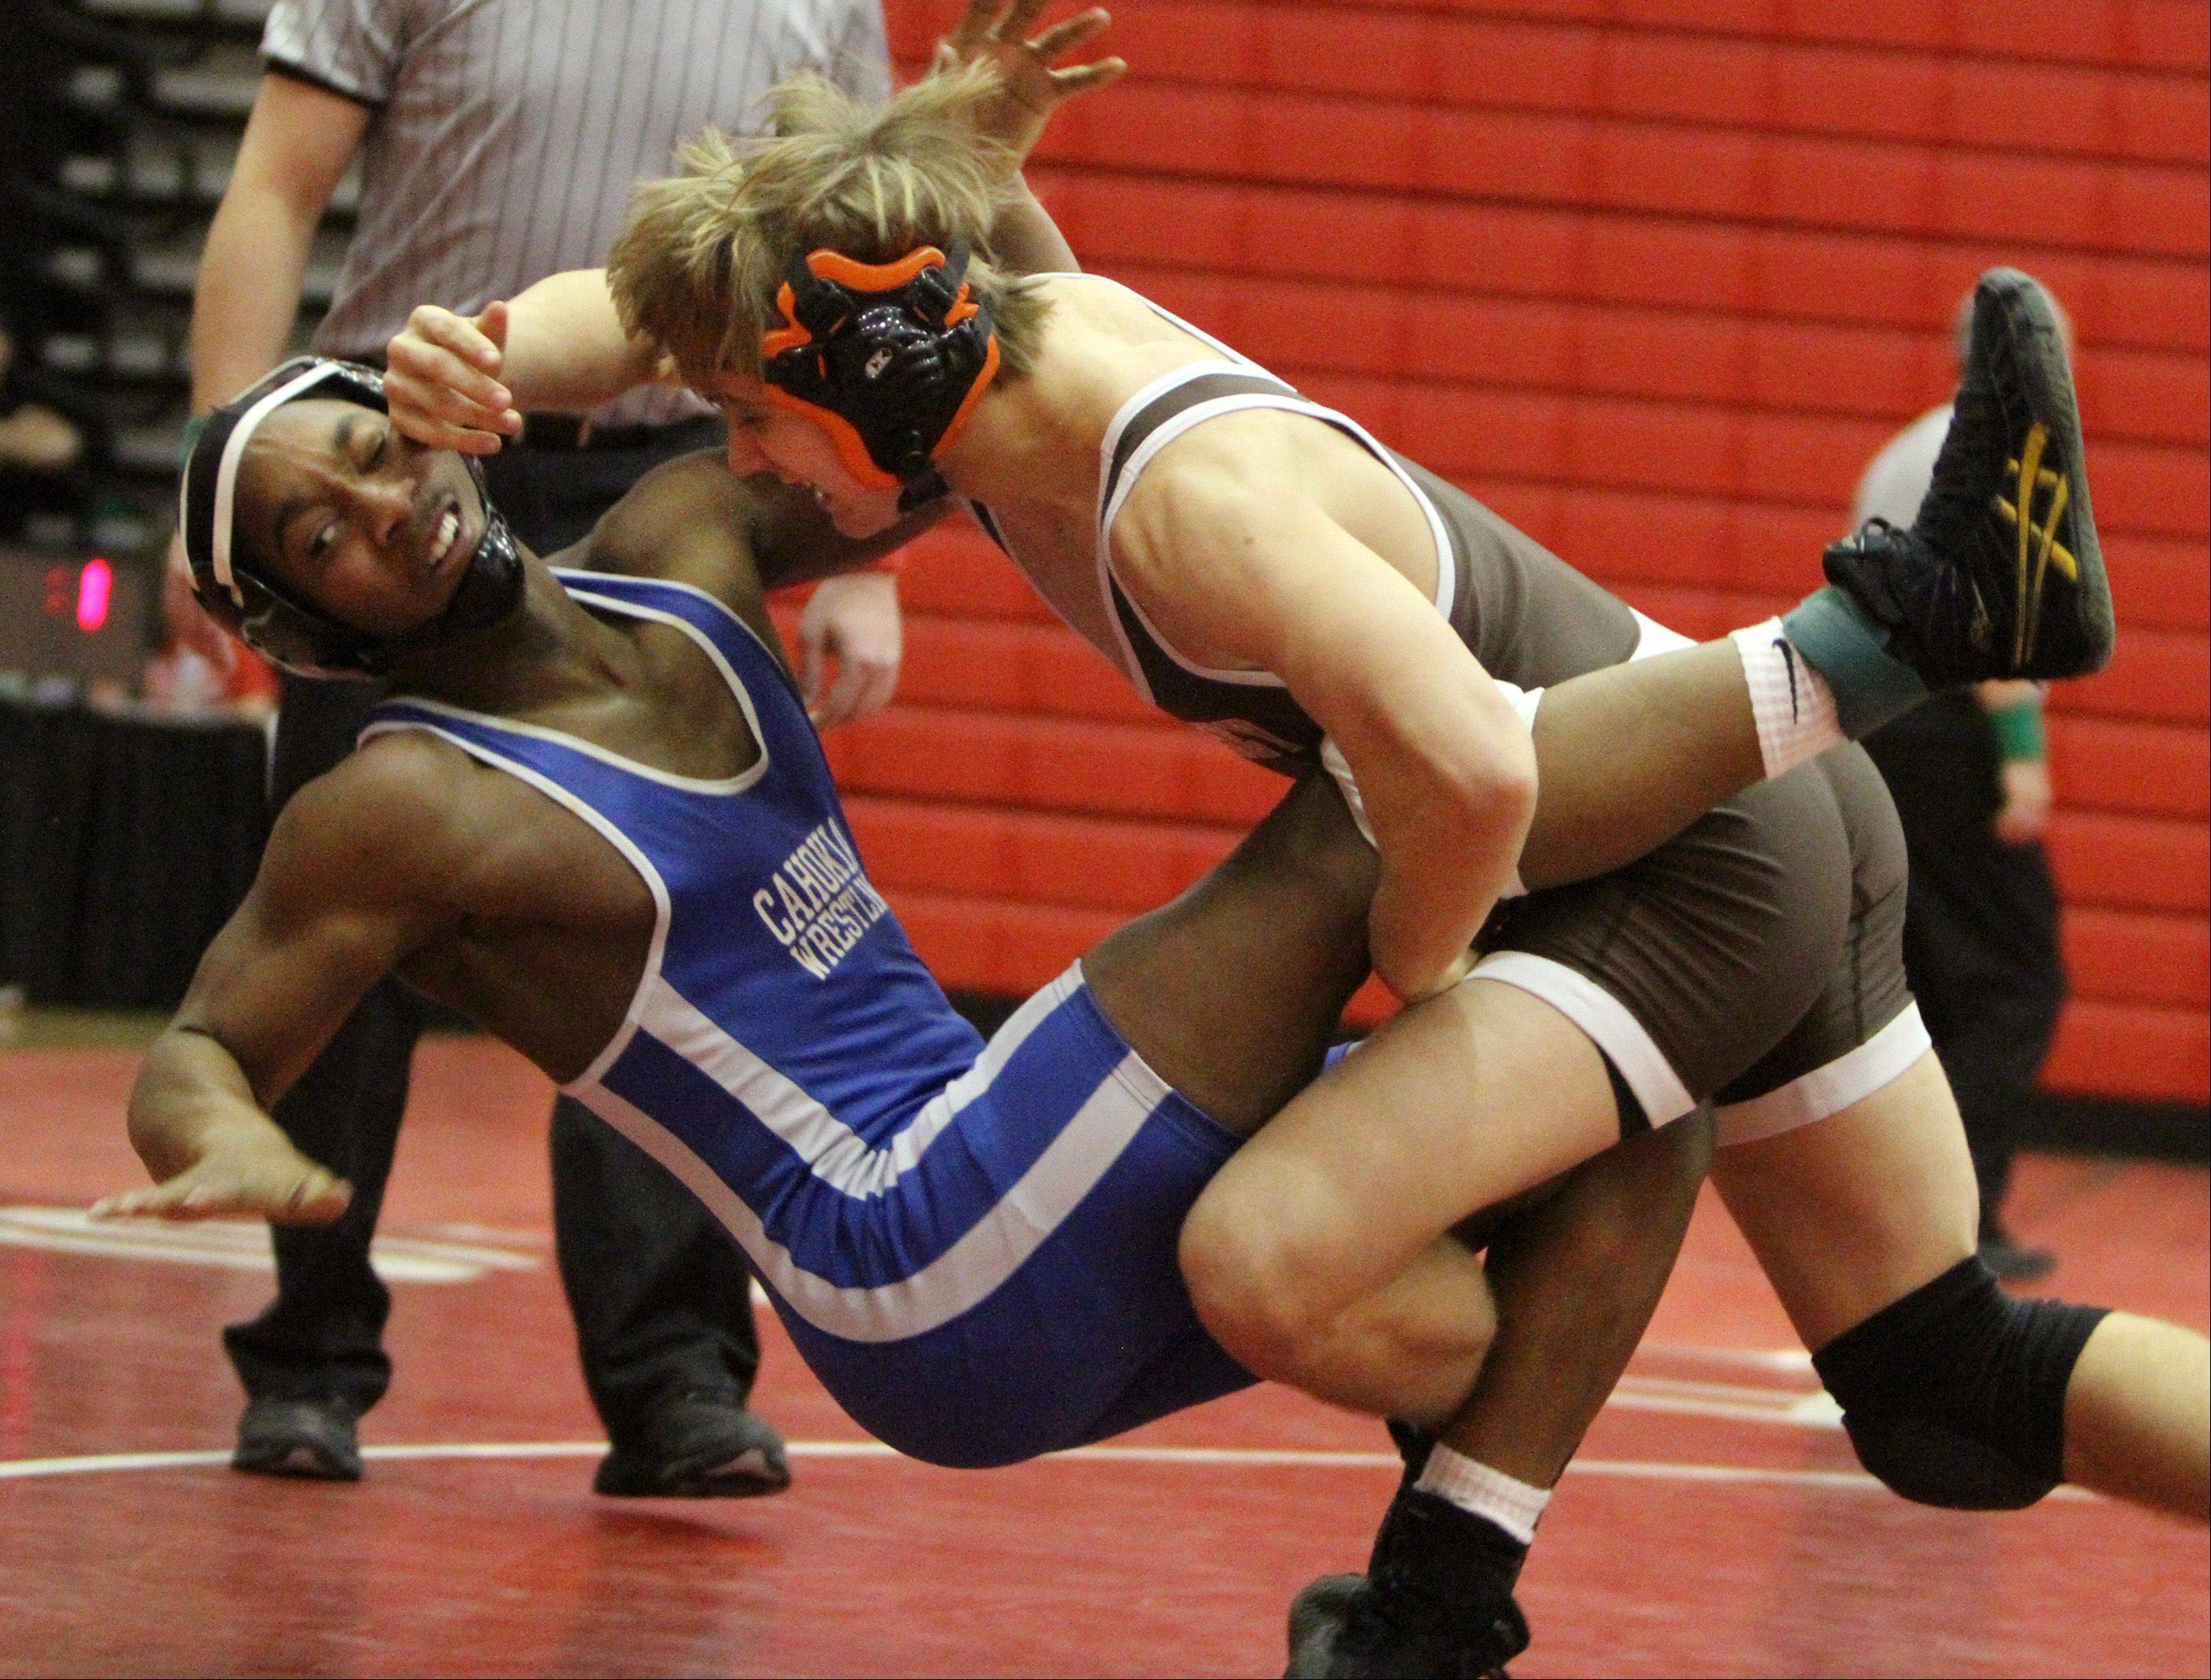 Hersey's Hunter Rollins takes down Cahokia's David Frazier in a 160-pound match at the 57th Annual Berman Holiday Classic wrestling meet in Palatine Wednesday.